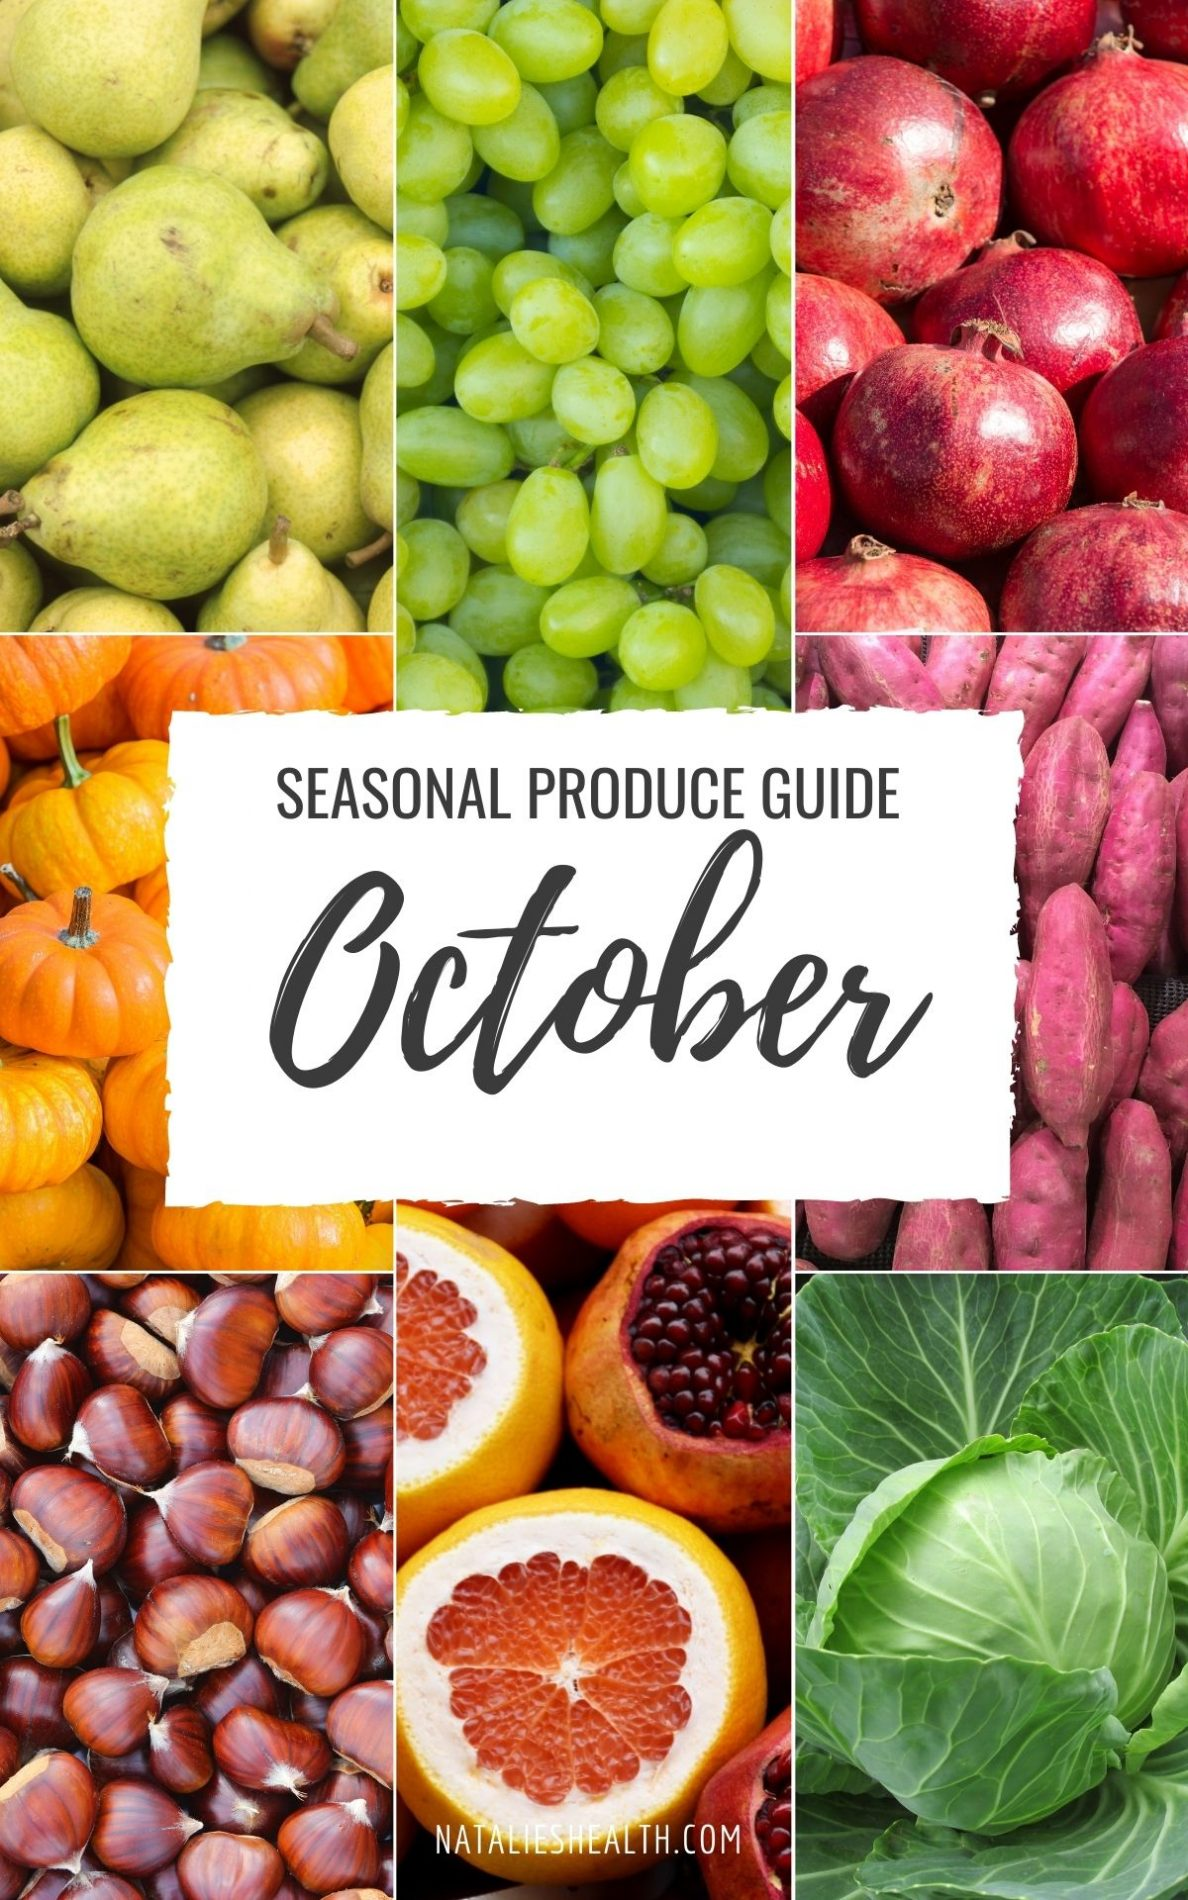 Seasonal Produce Guide What's in Season OCTOBER featured image